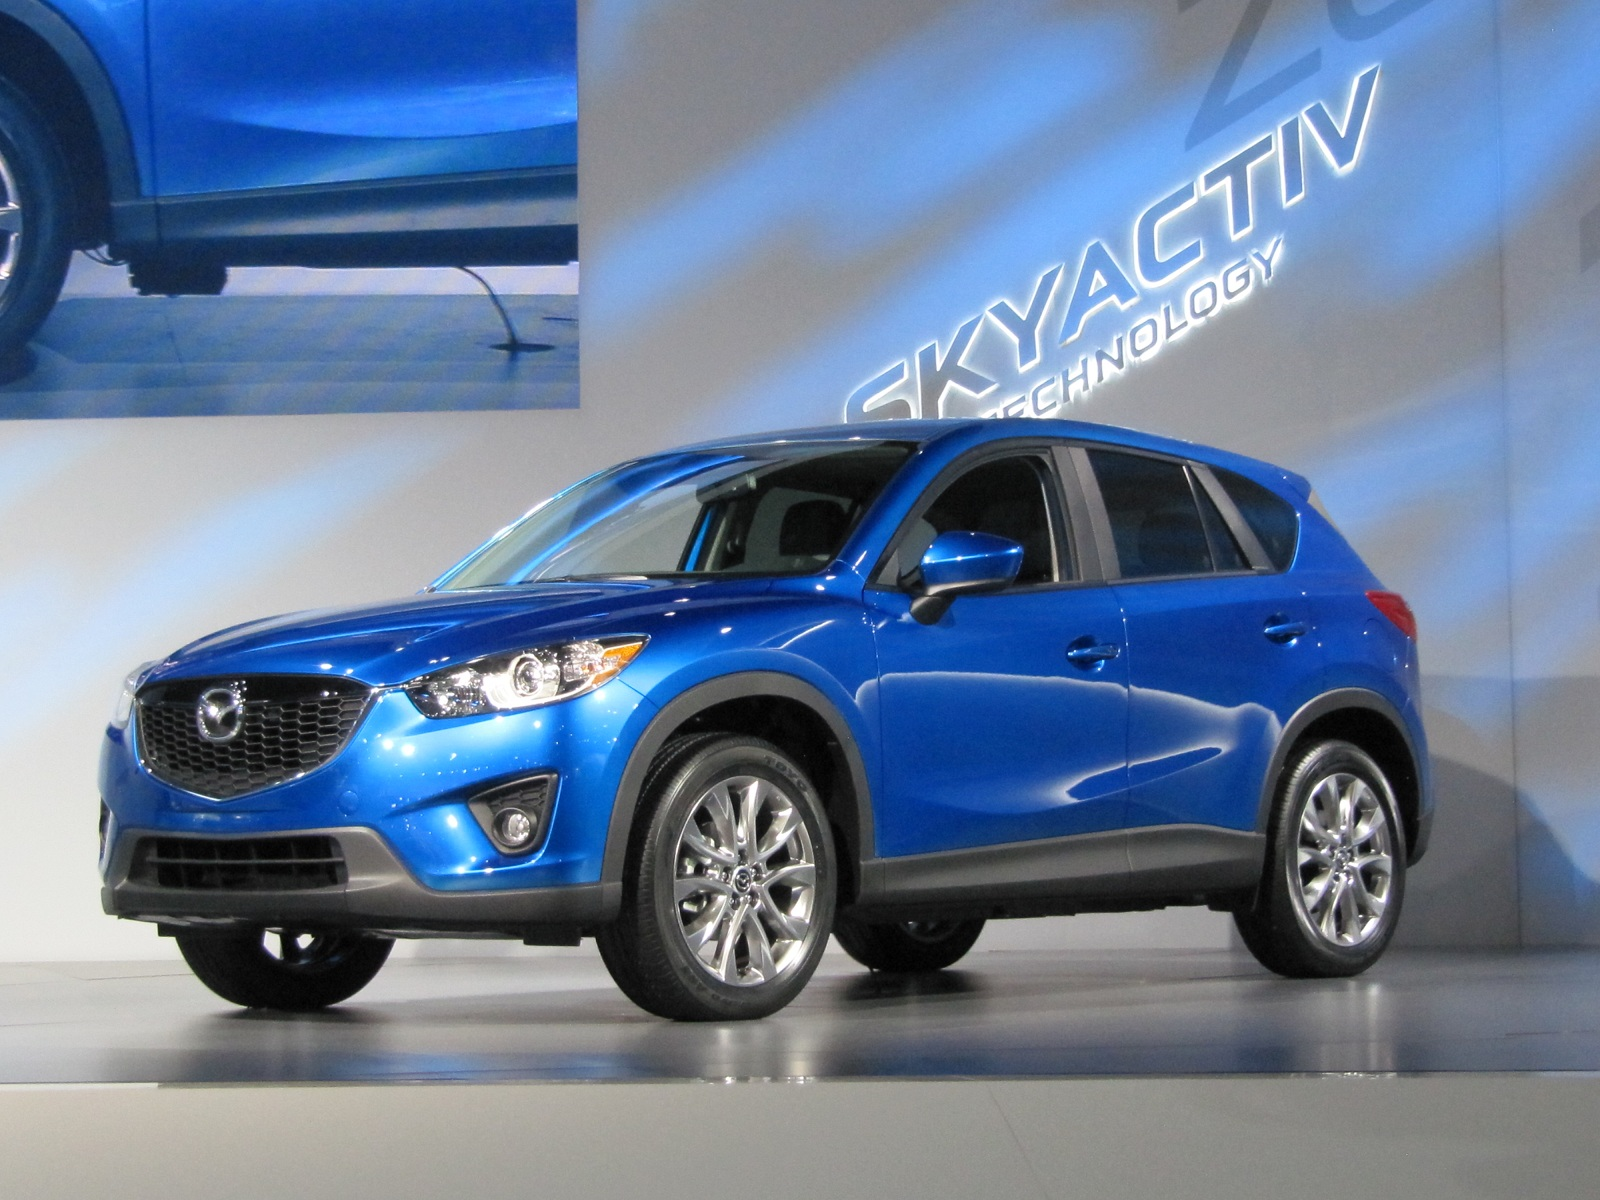 2013 mazda cx 5 debuts at 2011 la auto show. Black Bedroom Furniture Sets. Home Design Ideas